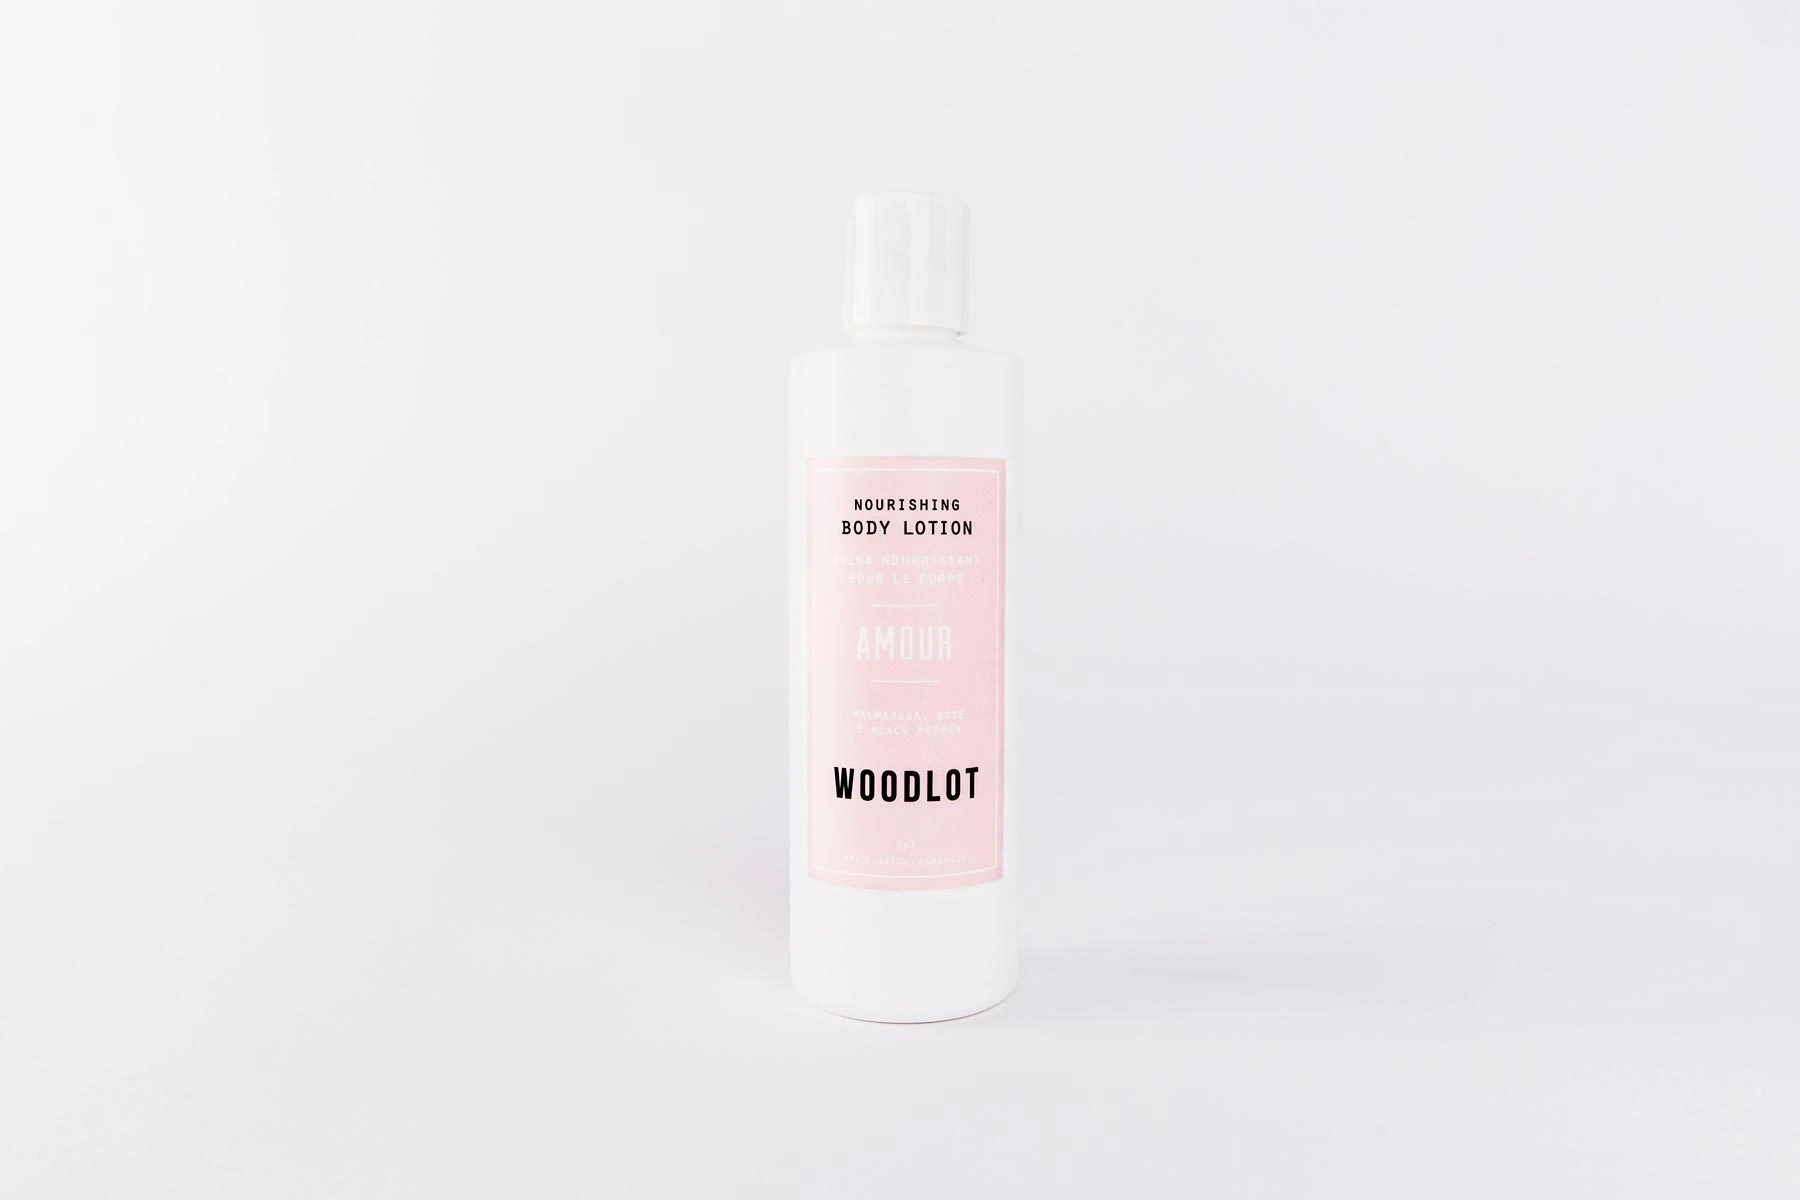 Woodlot - Nourishing Body Lotion